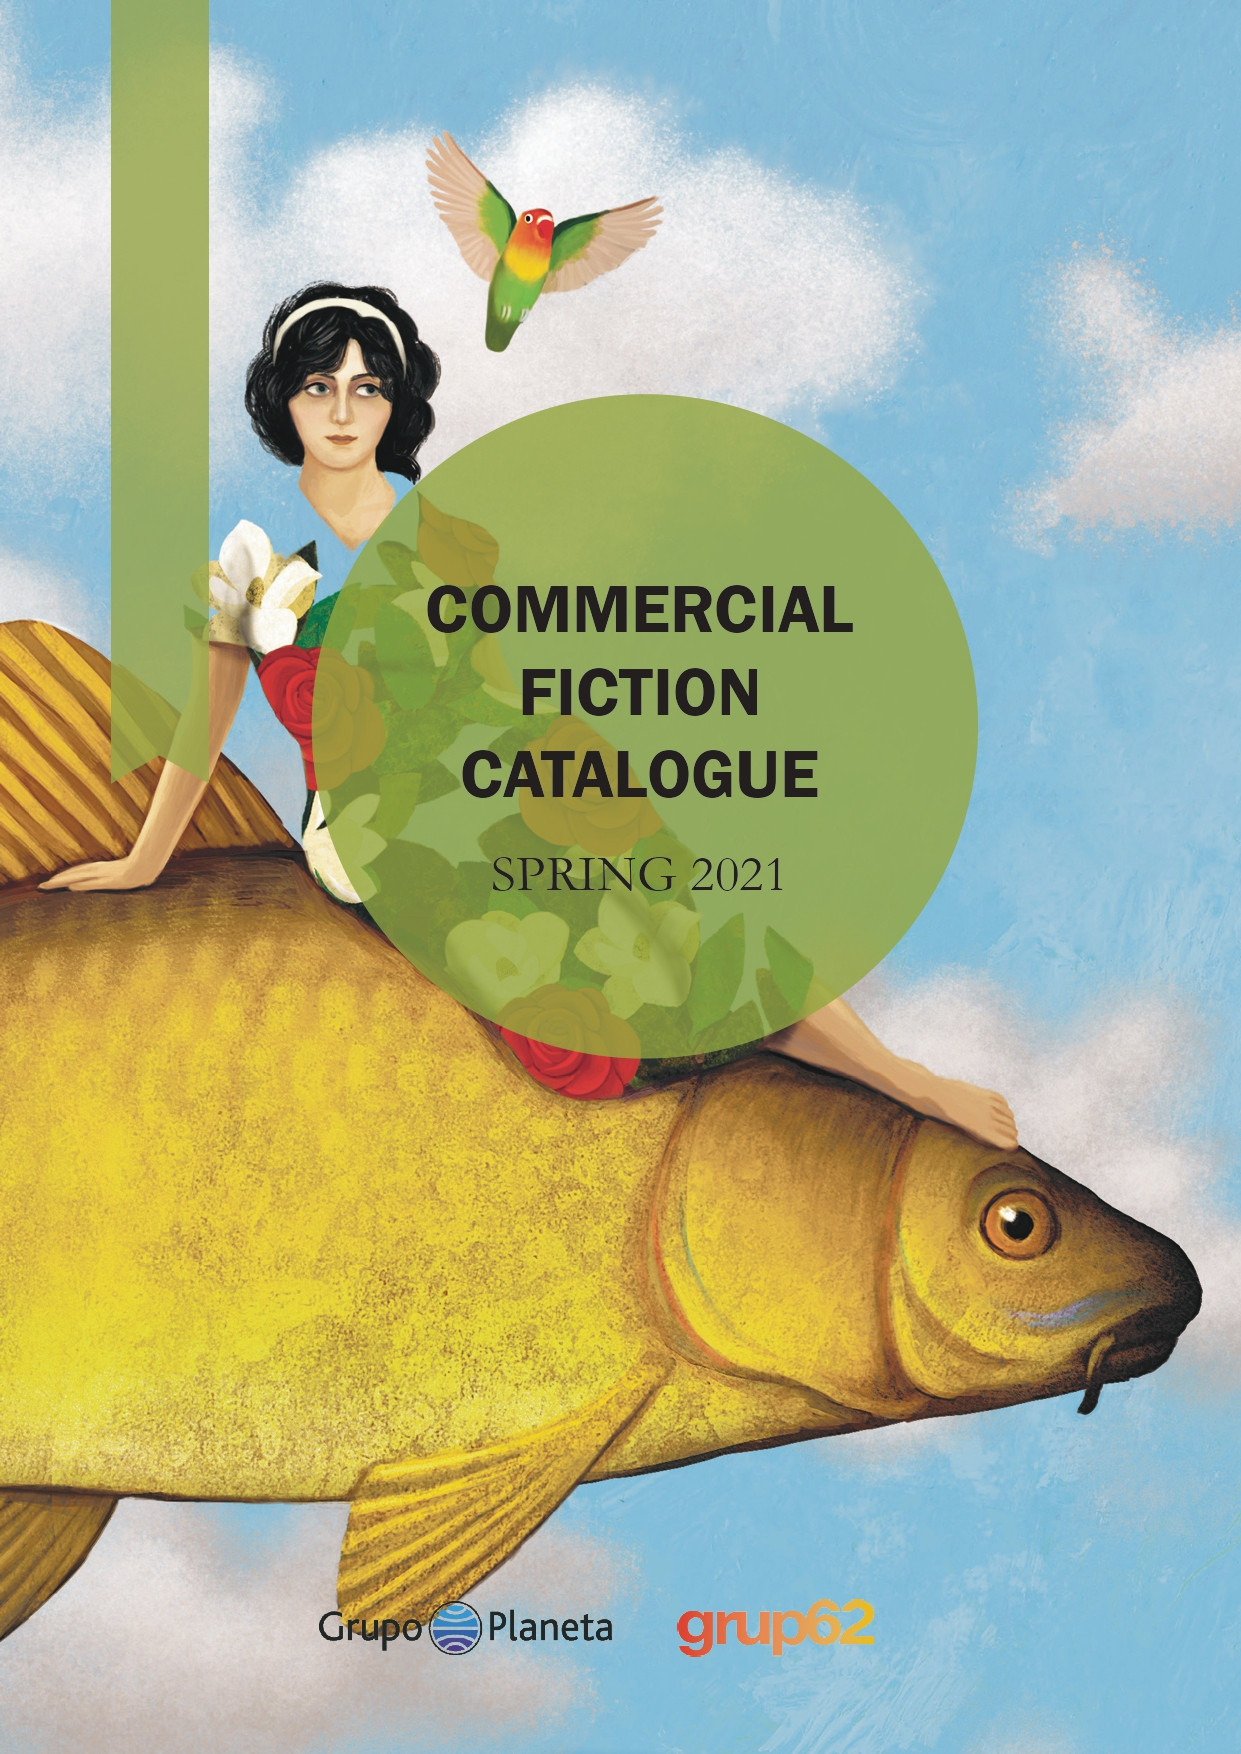 Spring 2021 Commercial Fiction